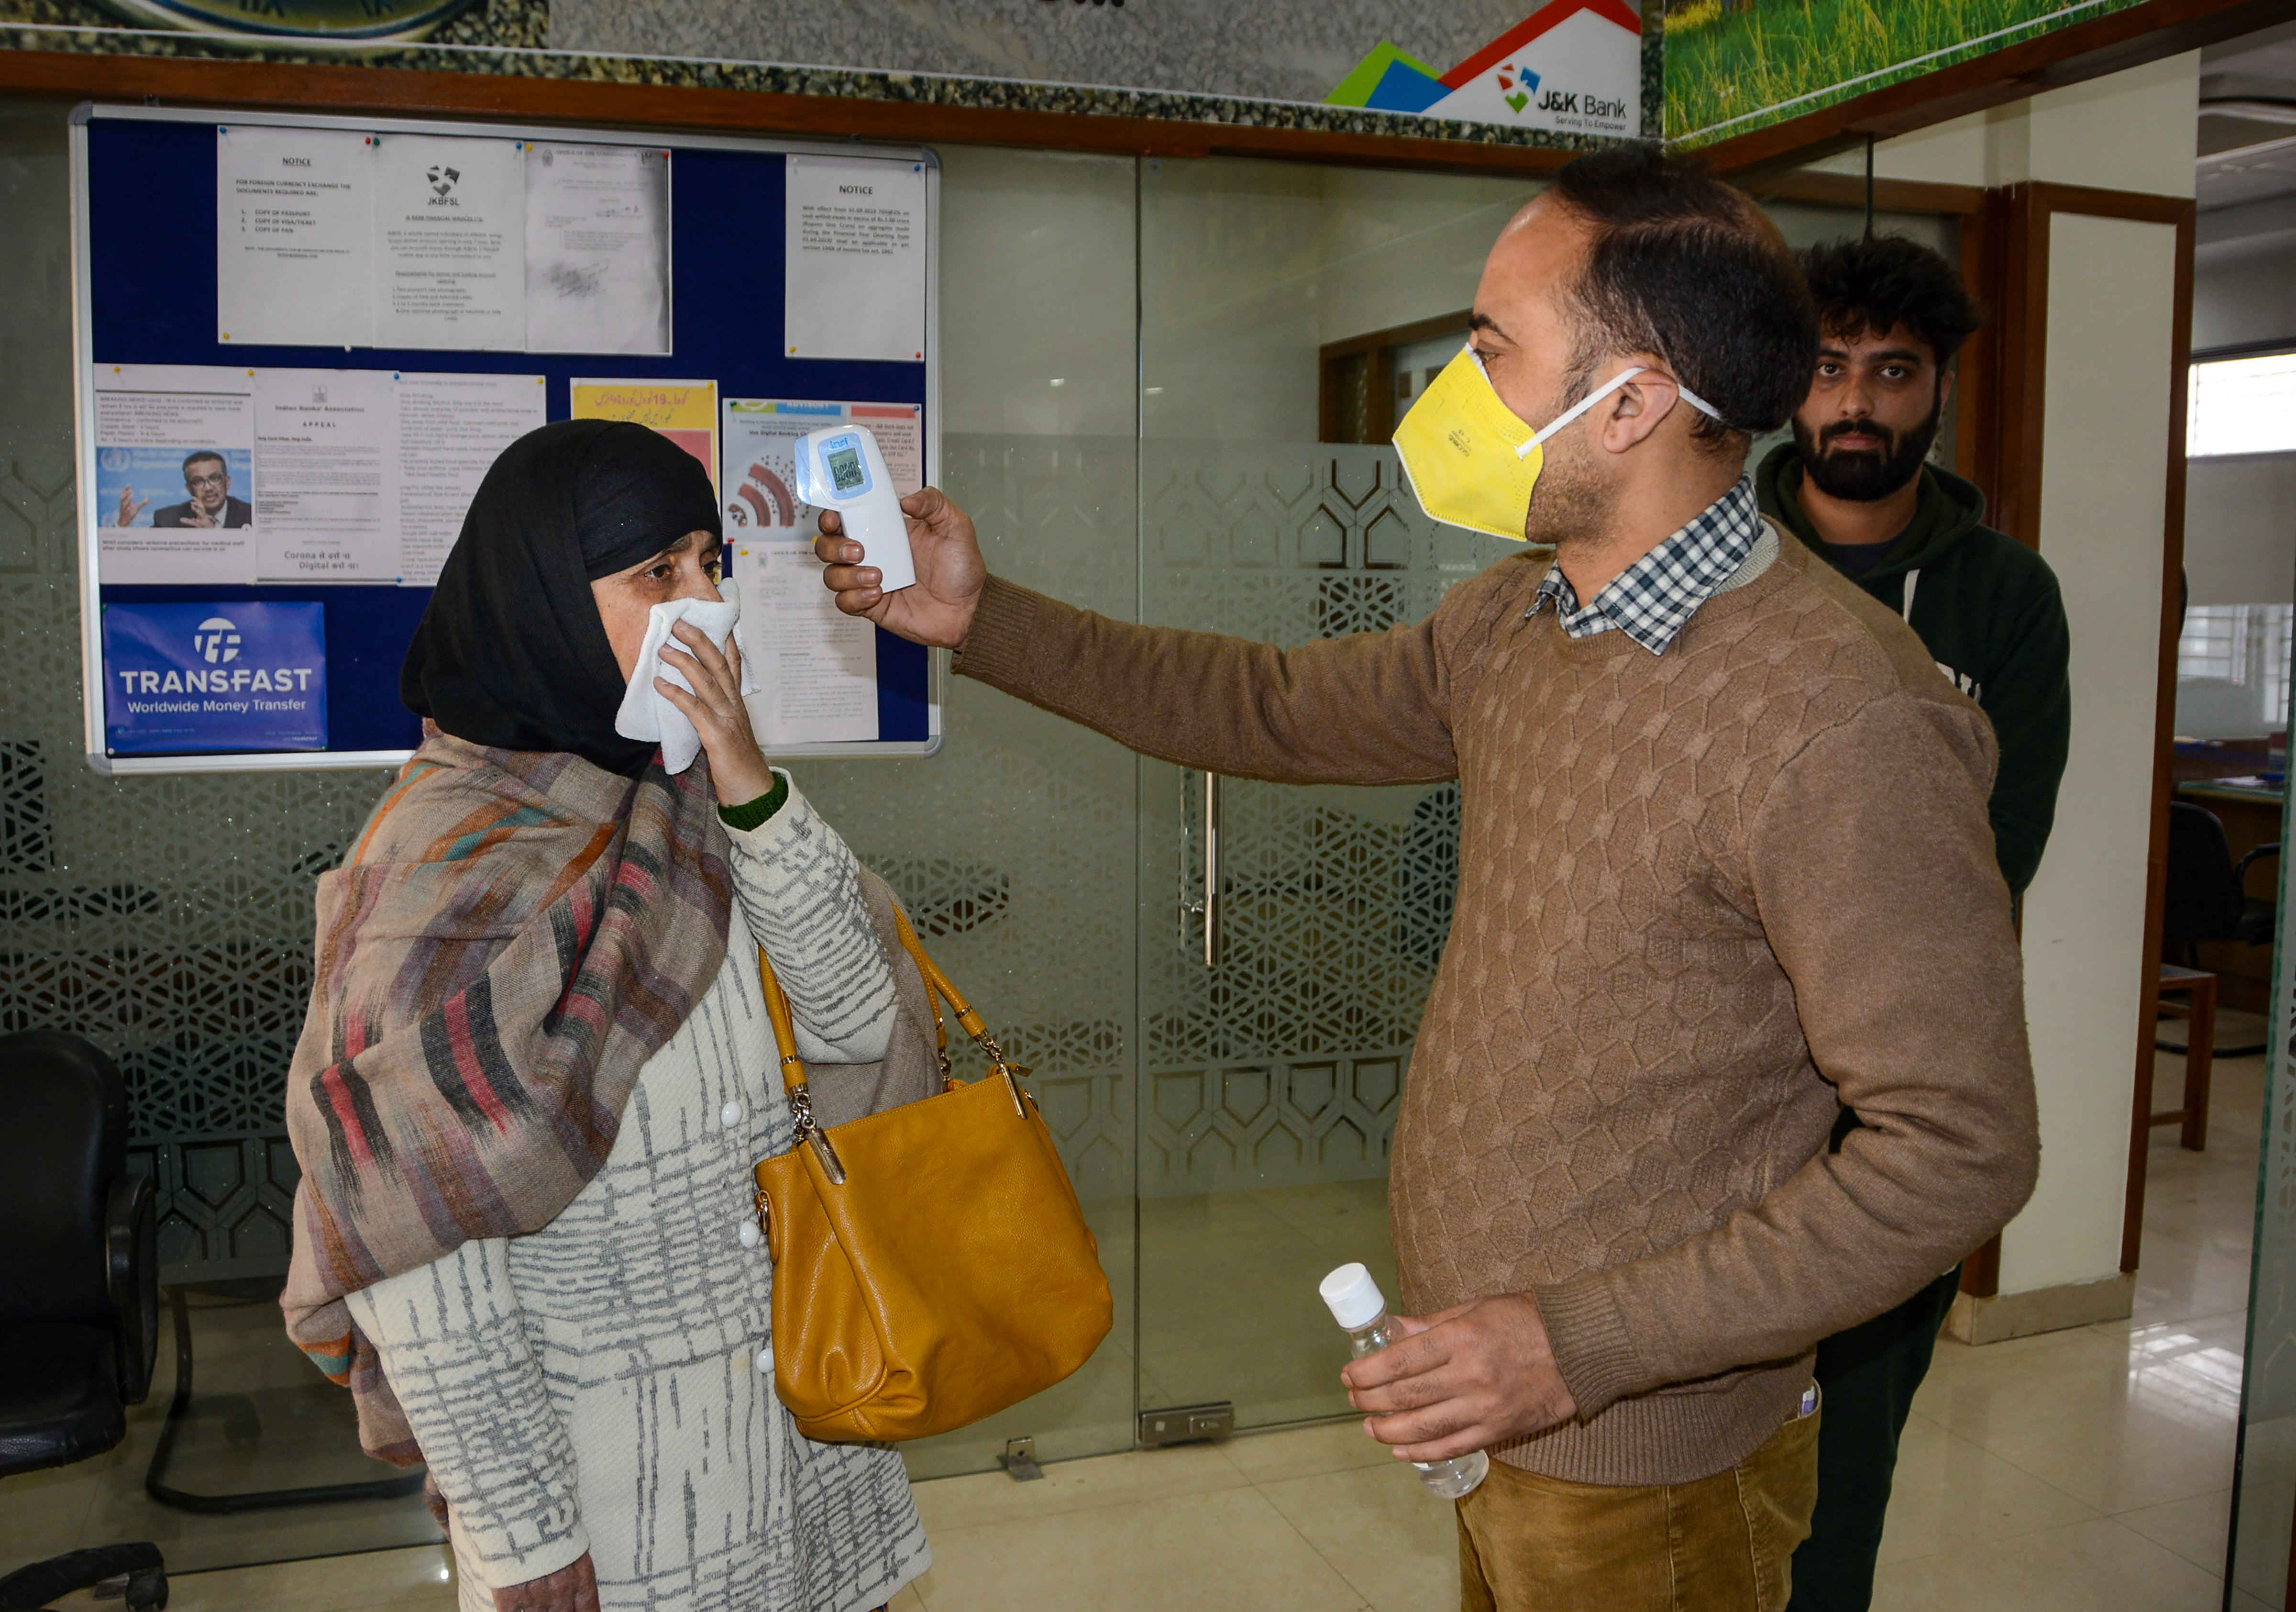 An official measures the temperature of a visitor using an infrared thermometer at the entrance of a bank, following the outbreak of coronavirus, in Srinagar, Monday March 23, 2020